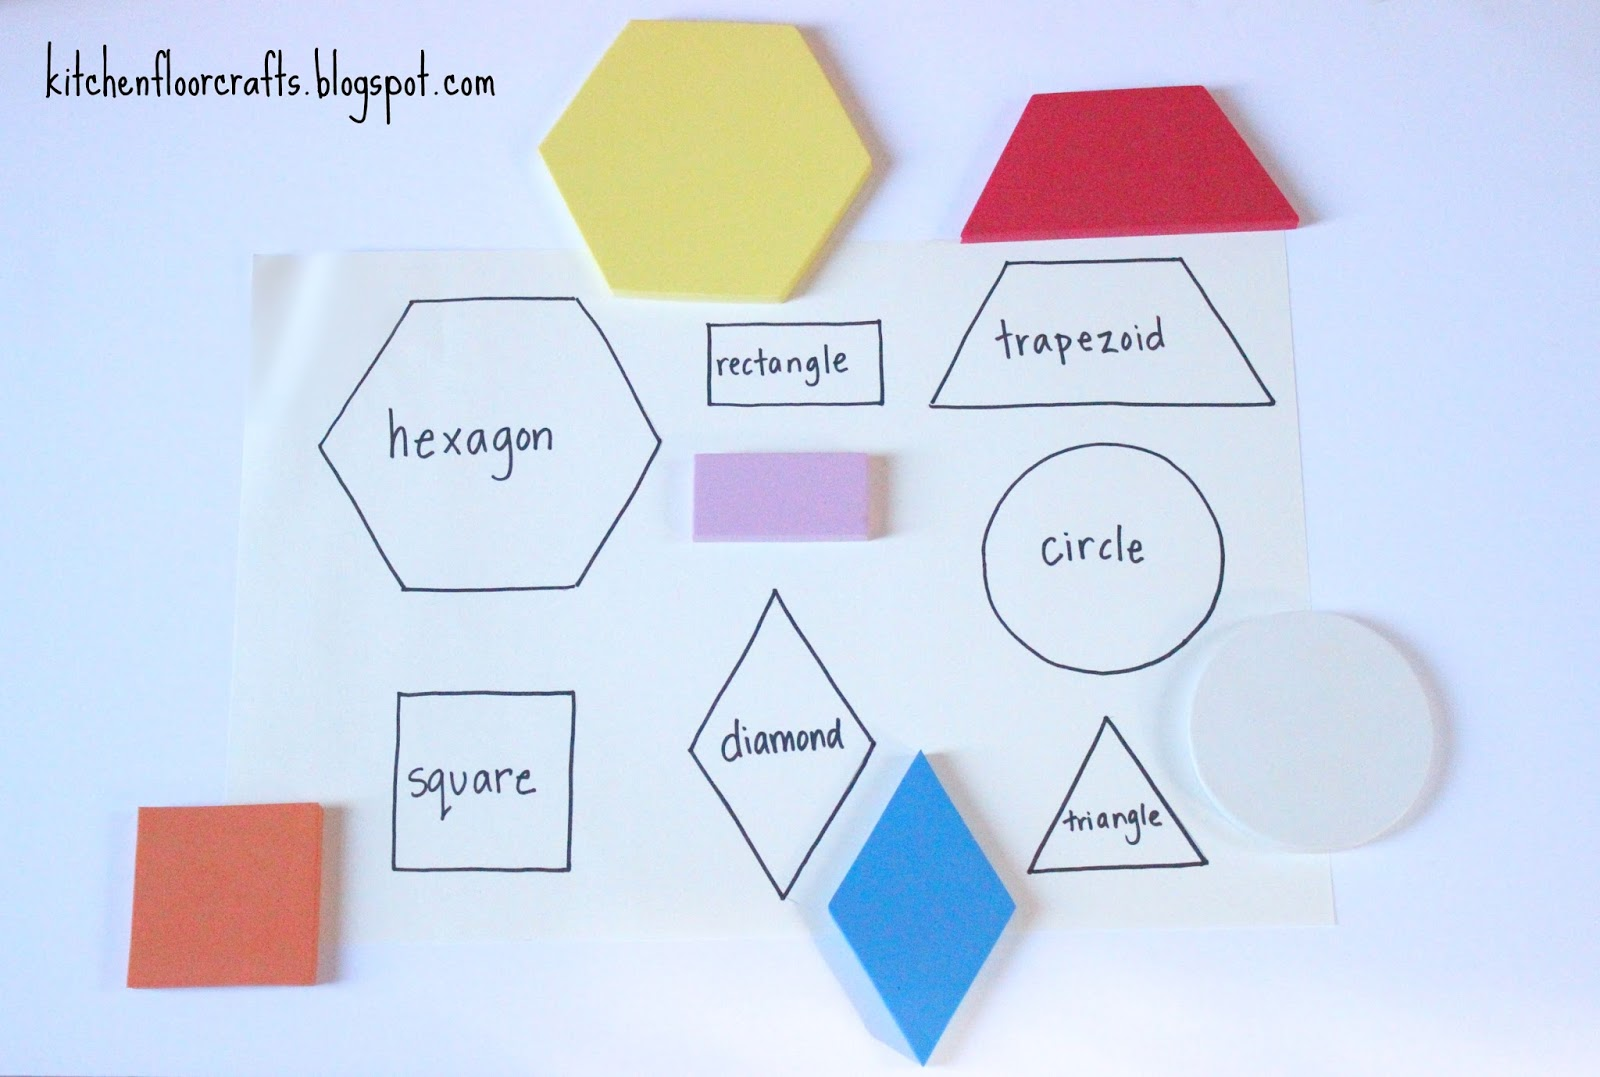 Kitchen Floor Crafts Shape Search in a Fall Backyard